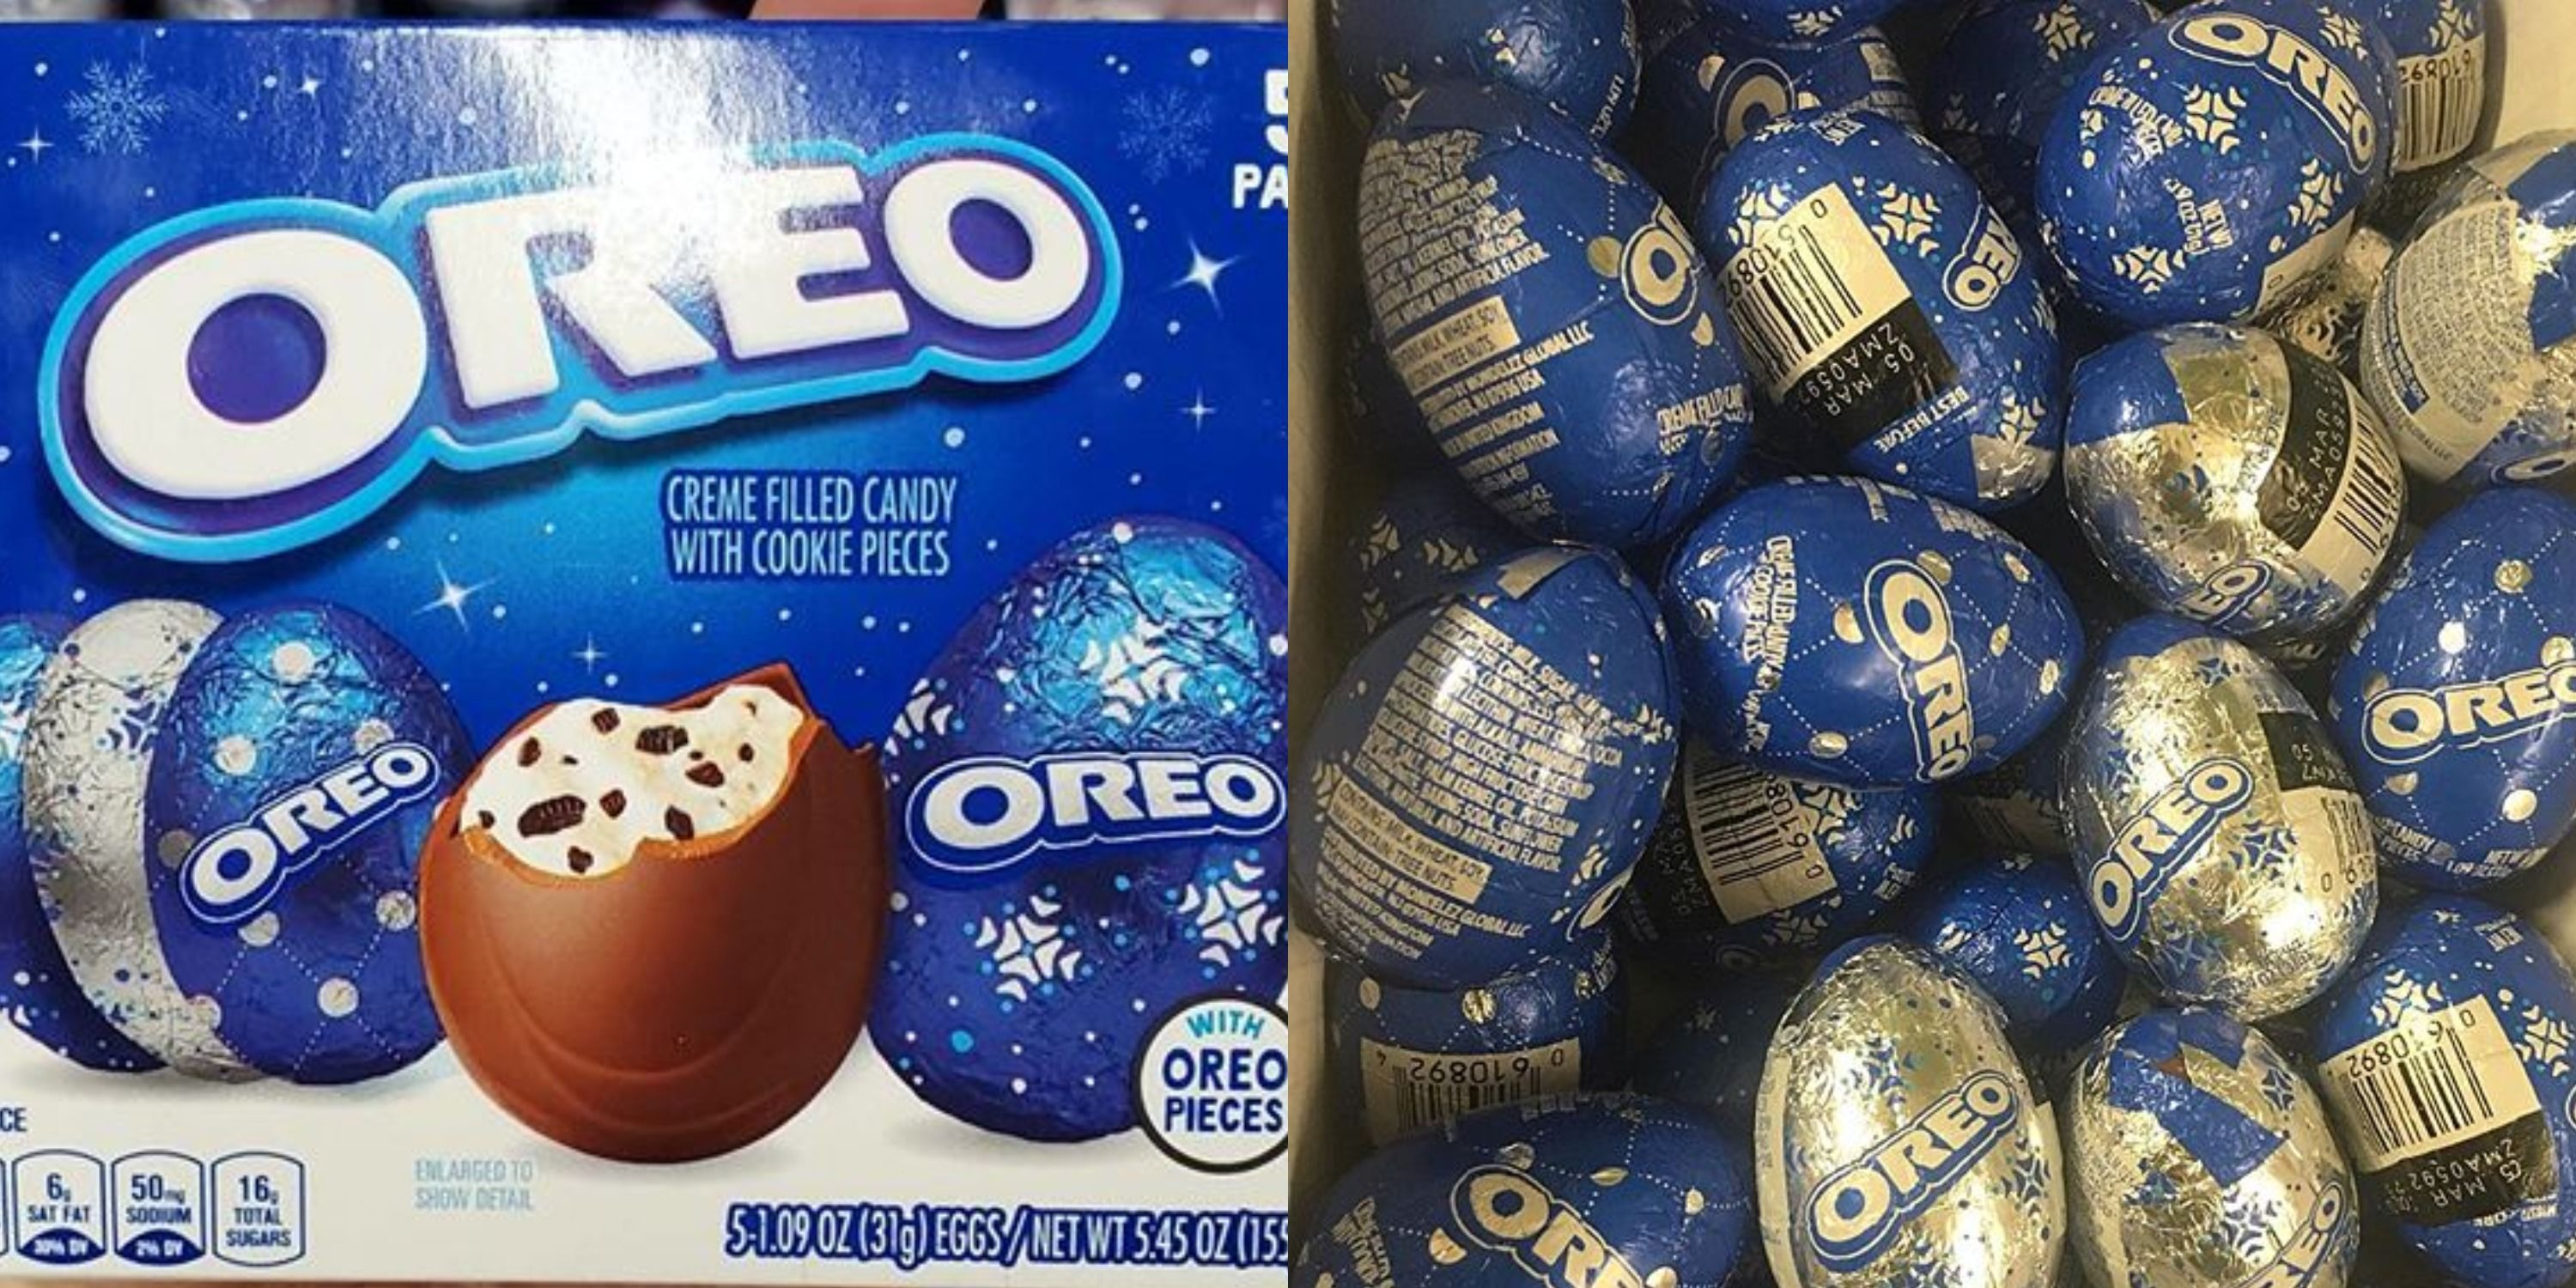 Oreo Eggs Are Back On Shelves This Winter For Some Reason